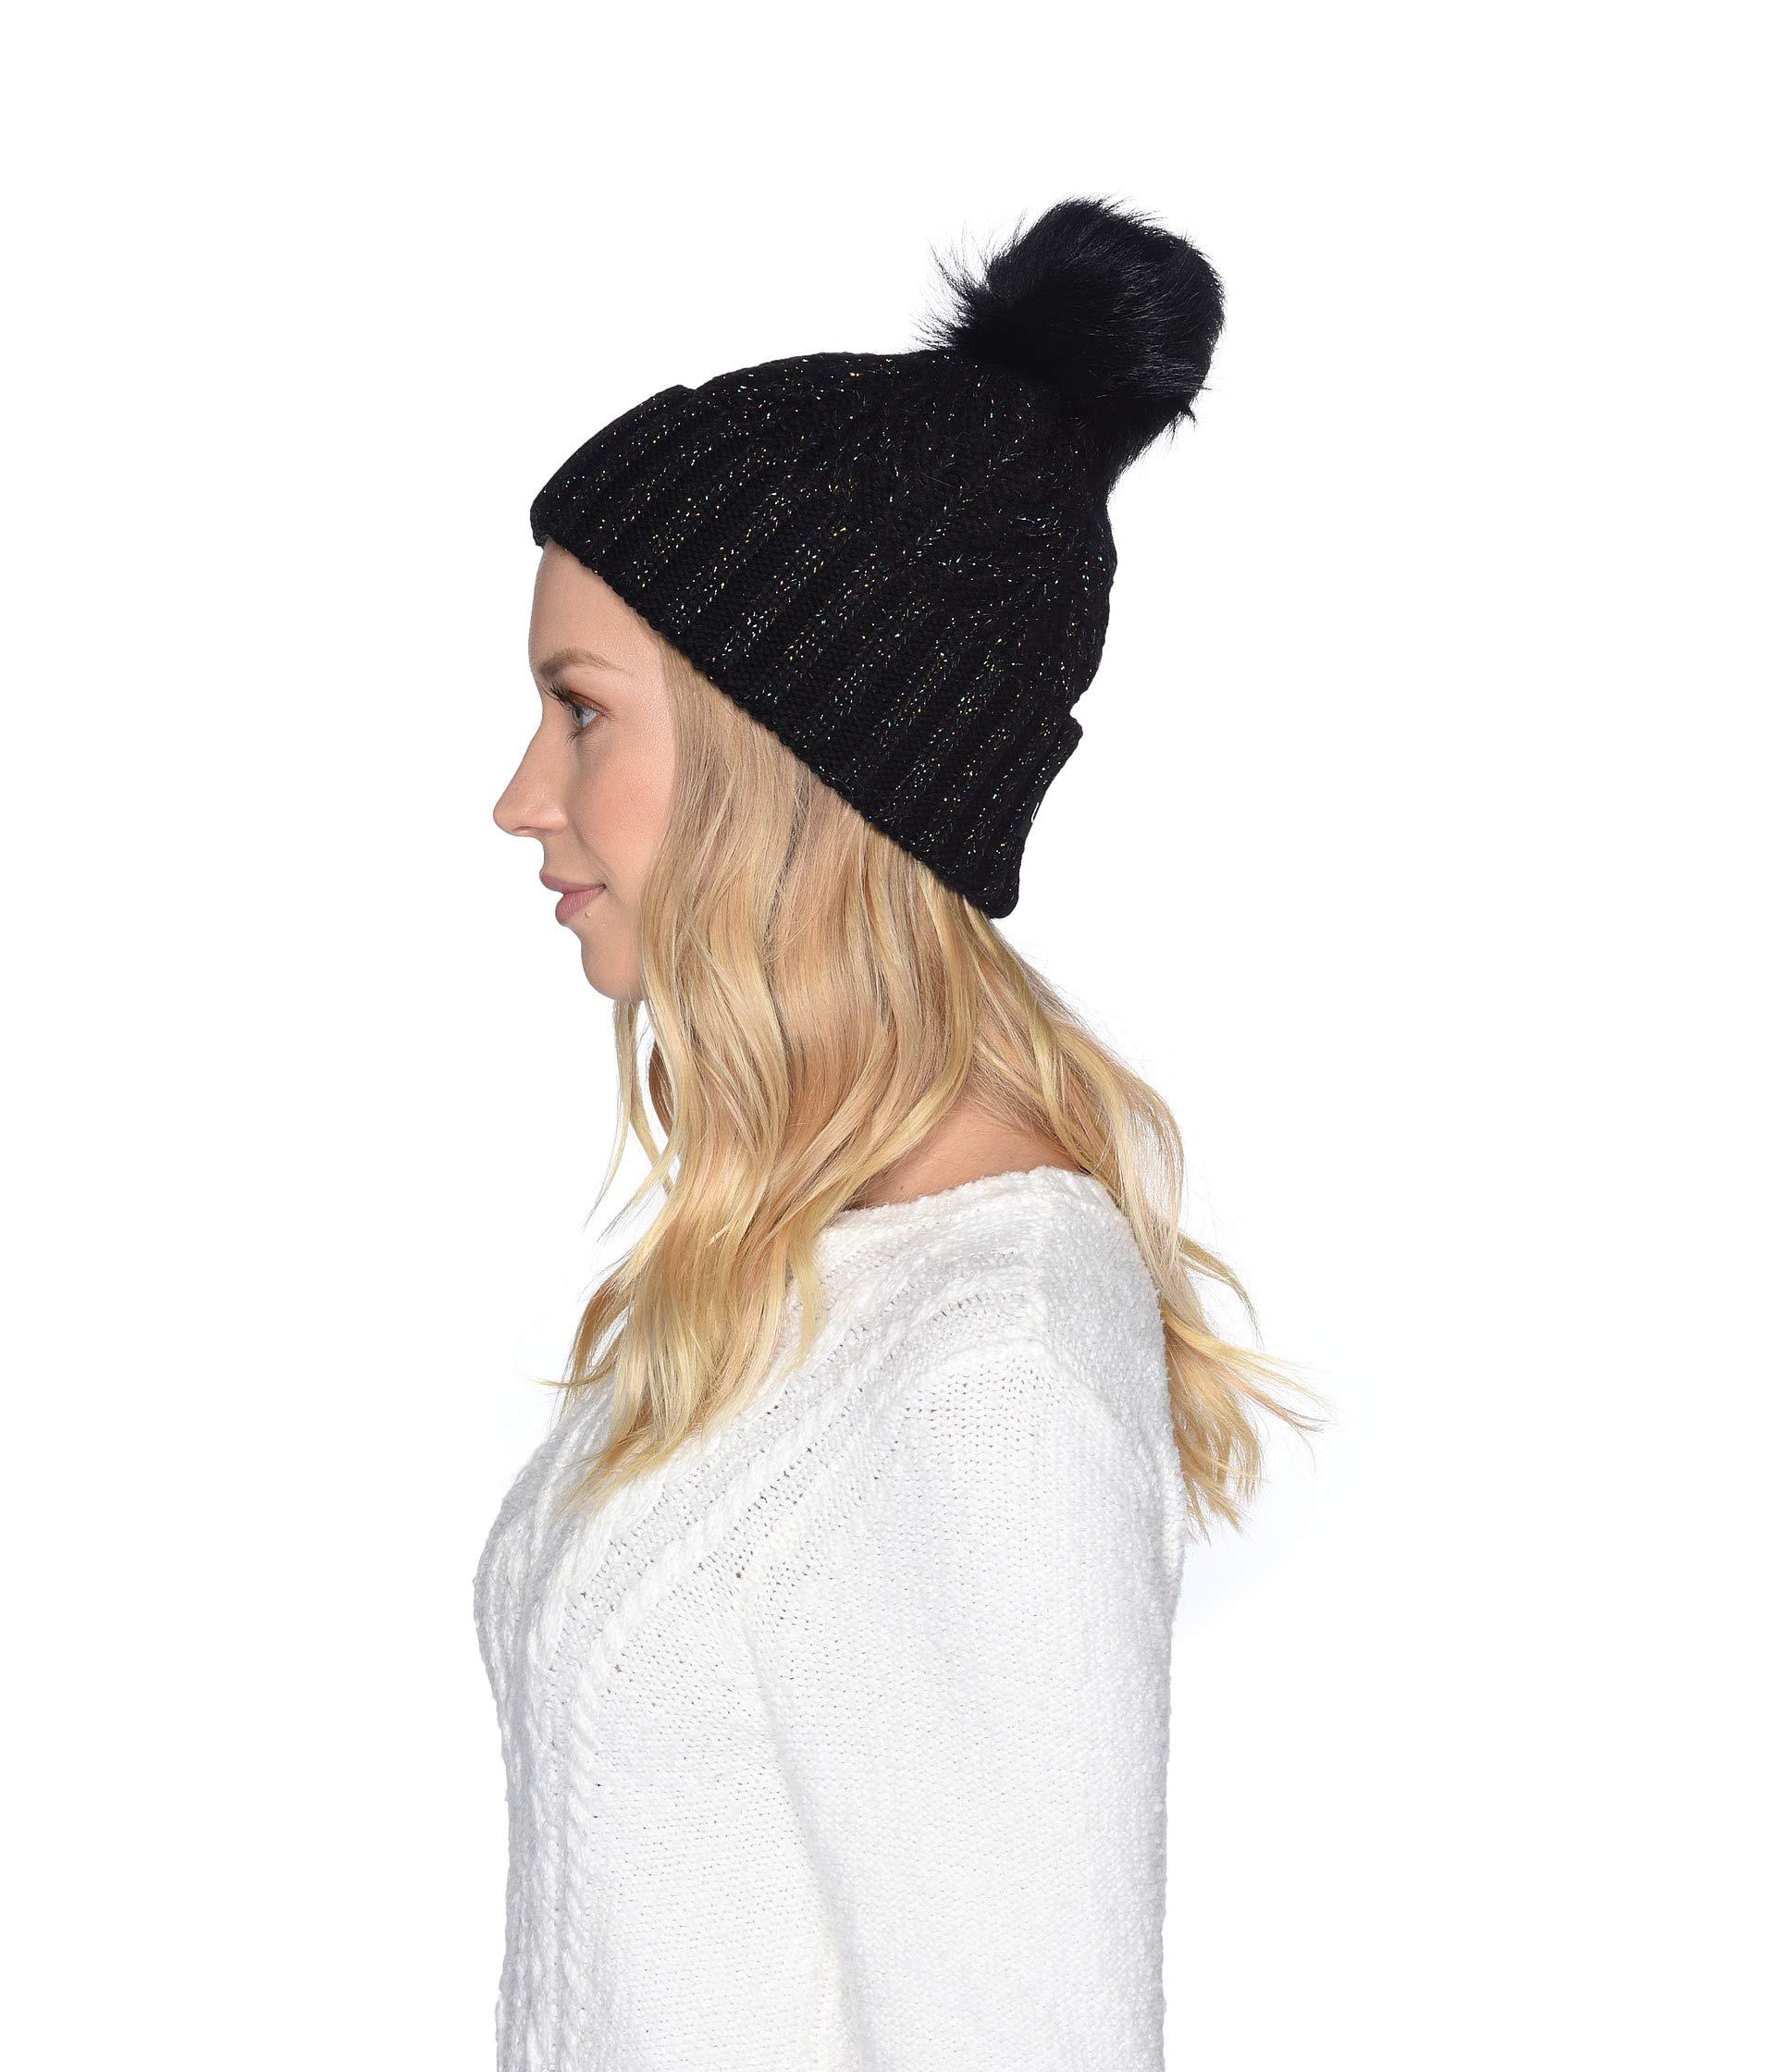 Lyst - UGG Cable Knit Pom Beanie (black Multi Metallic Plaited) Caps in  Black b89adcc985fe